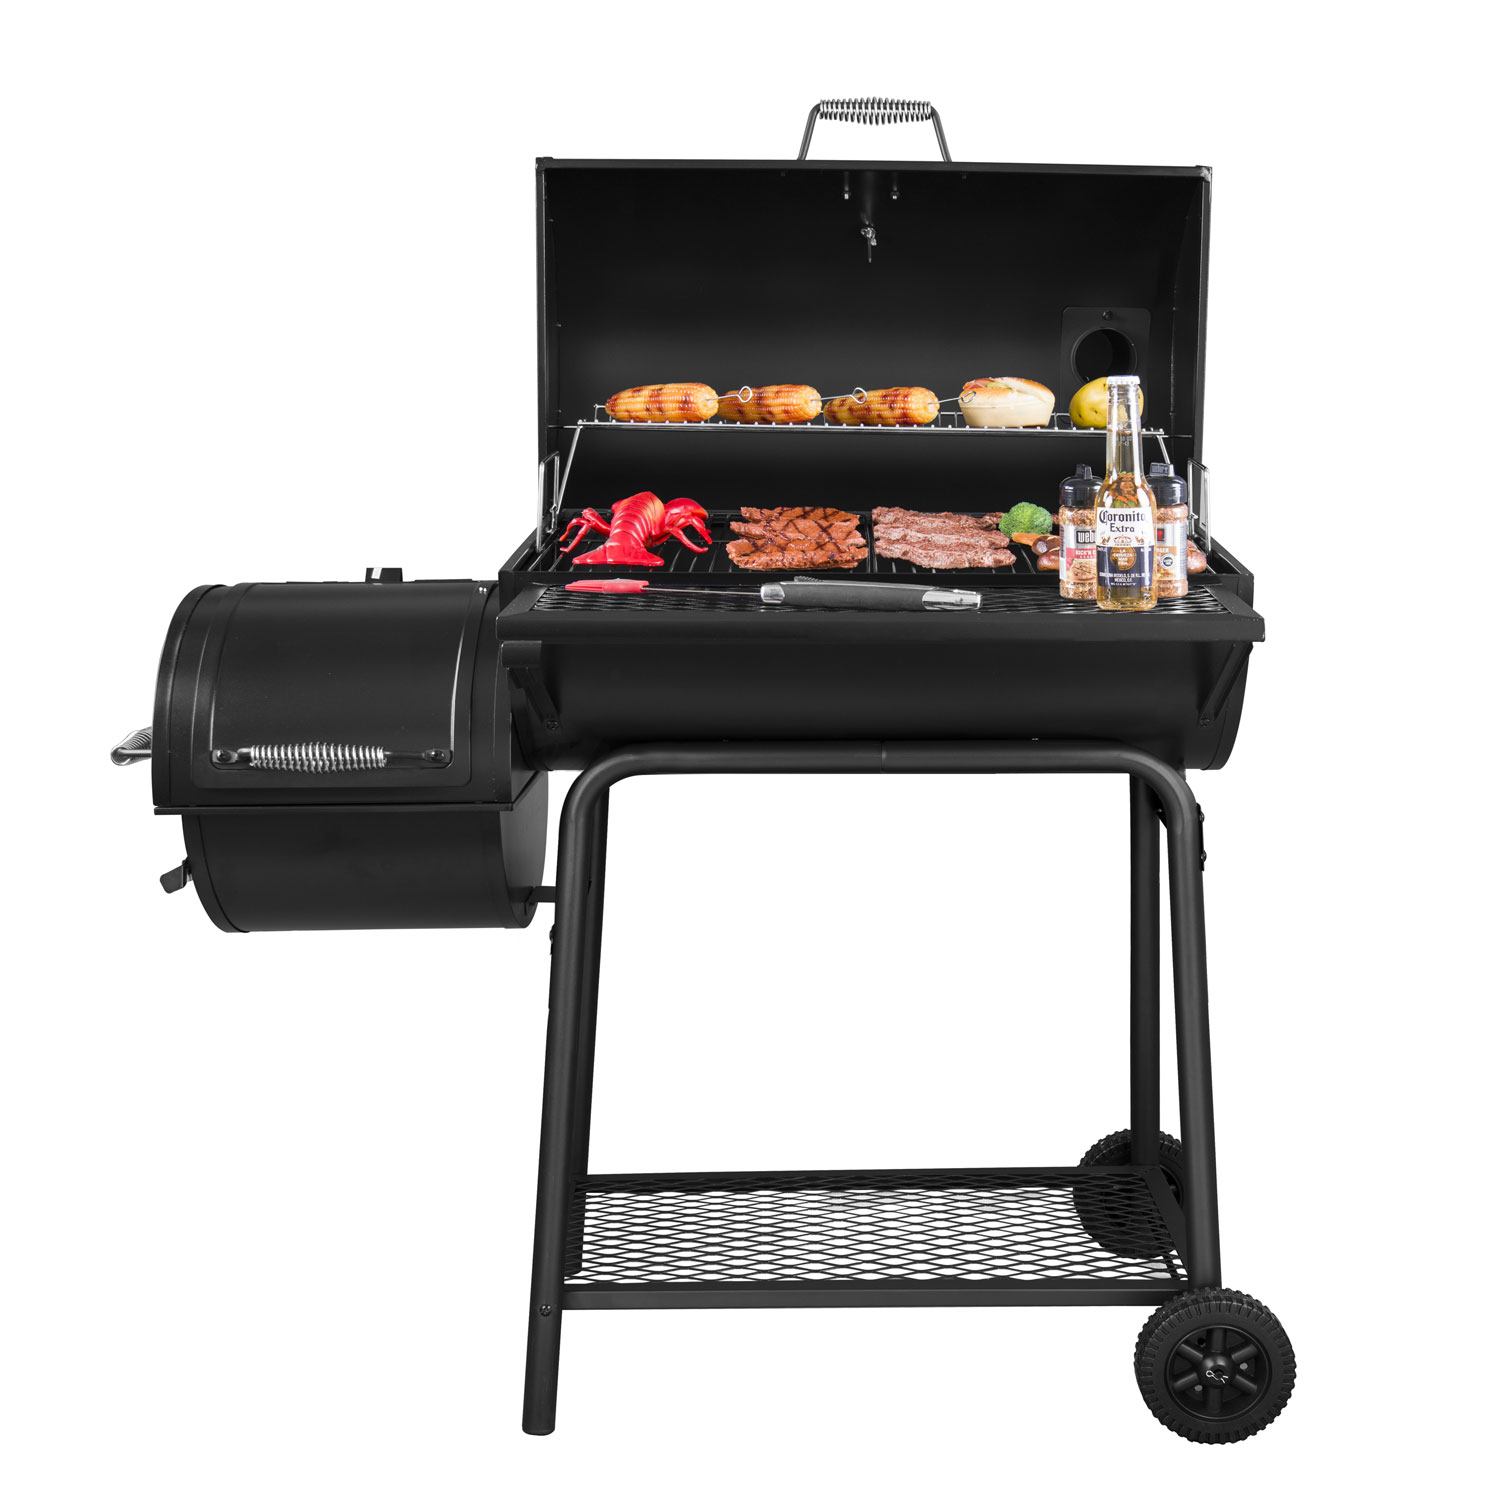 Royal Gourmet 30'' Barrel Charcoal Grill with Smoker